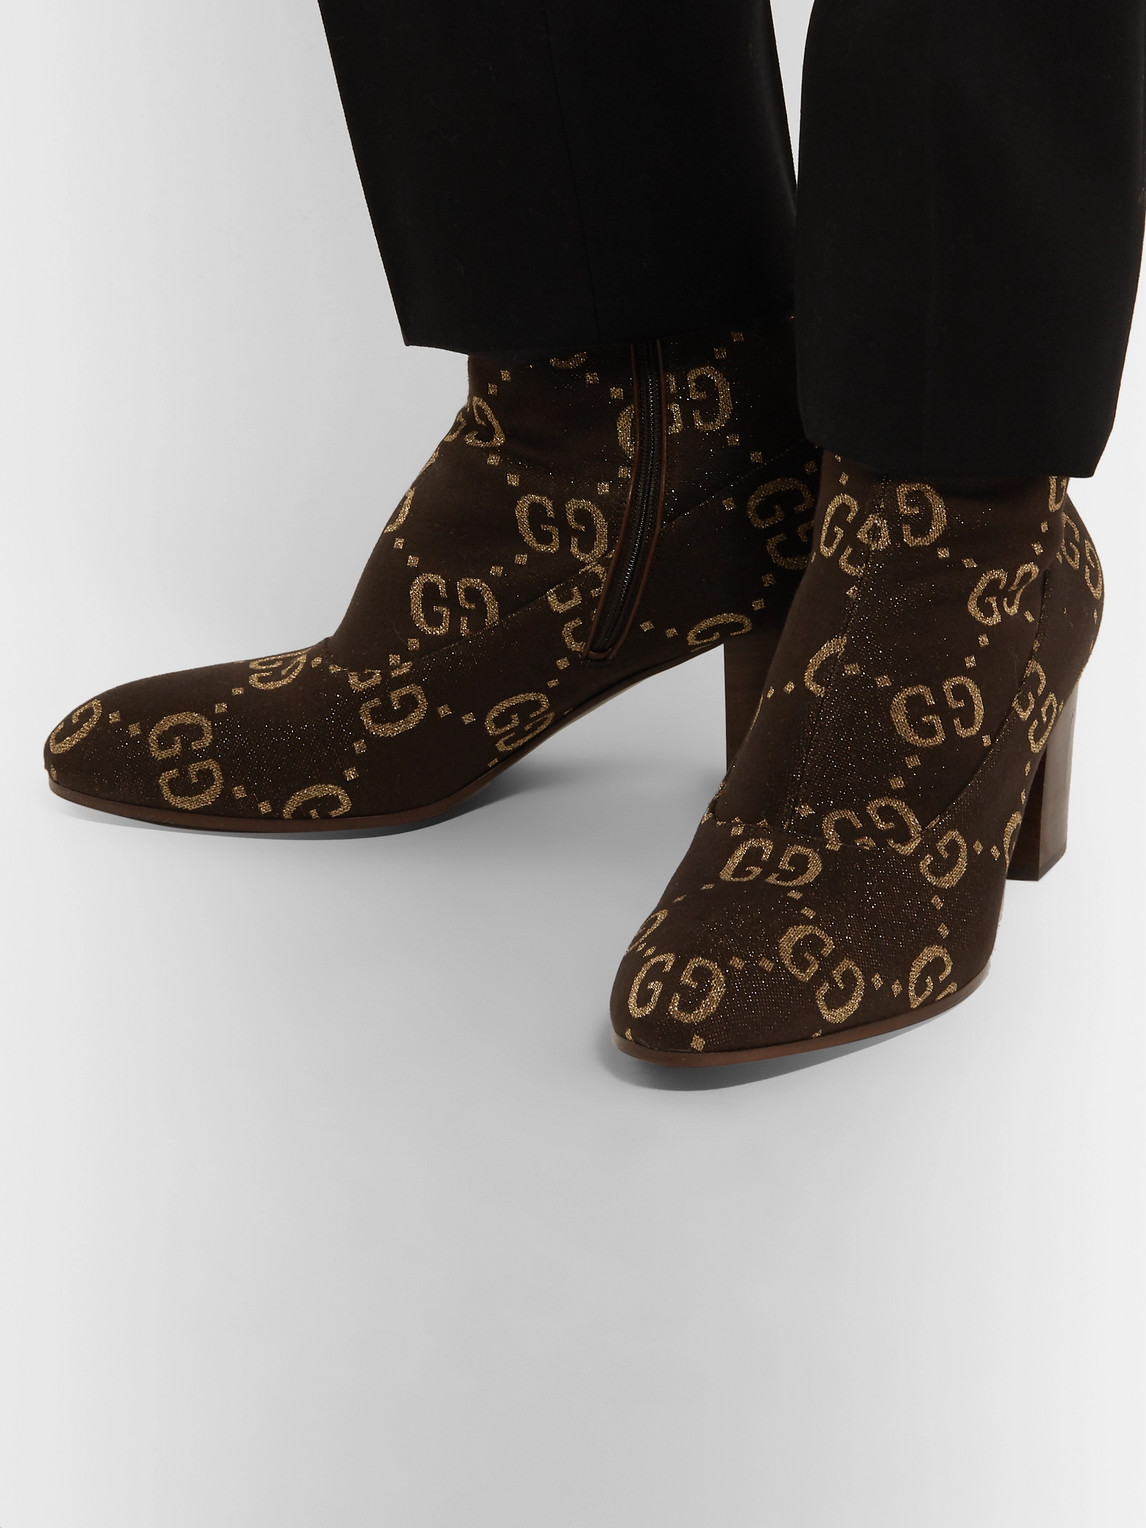 Gucci Boots LEATHER-TRIMMED LOGO-JACQUARD BOOTS